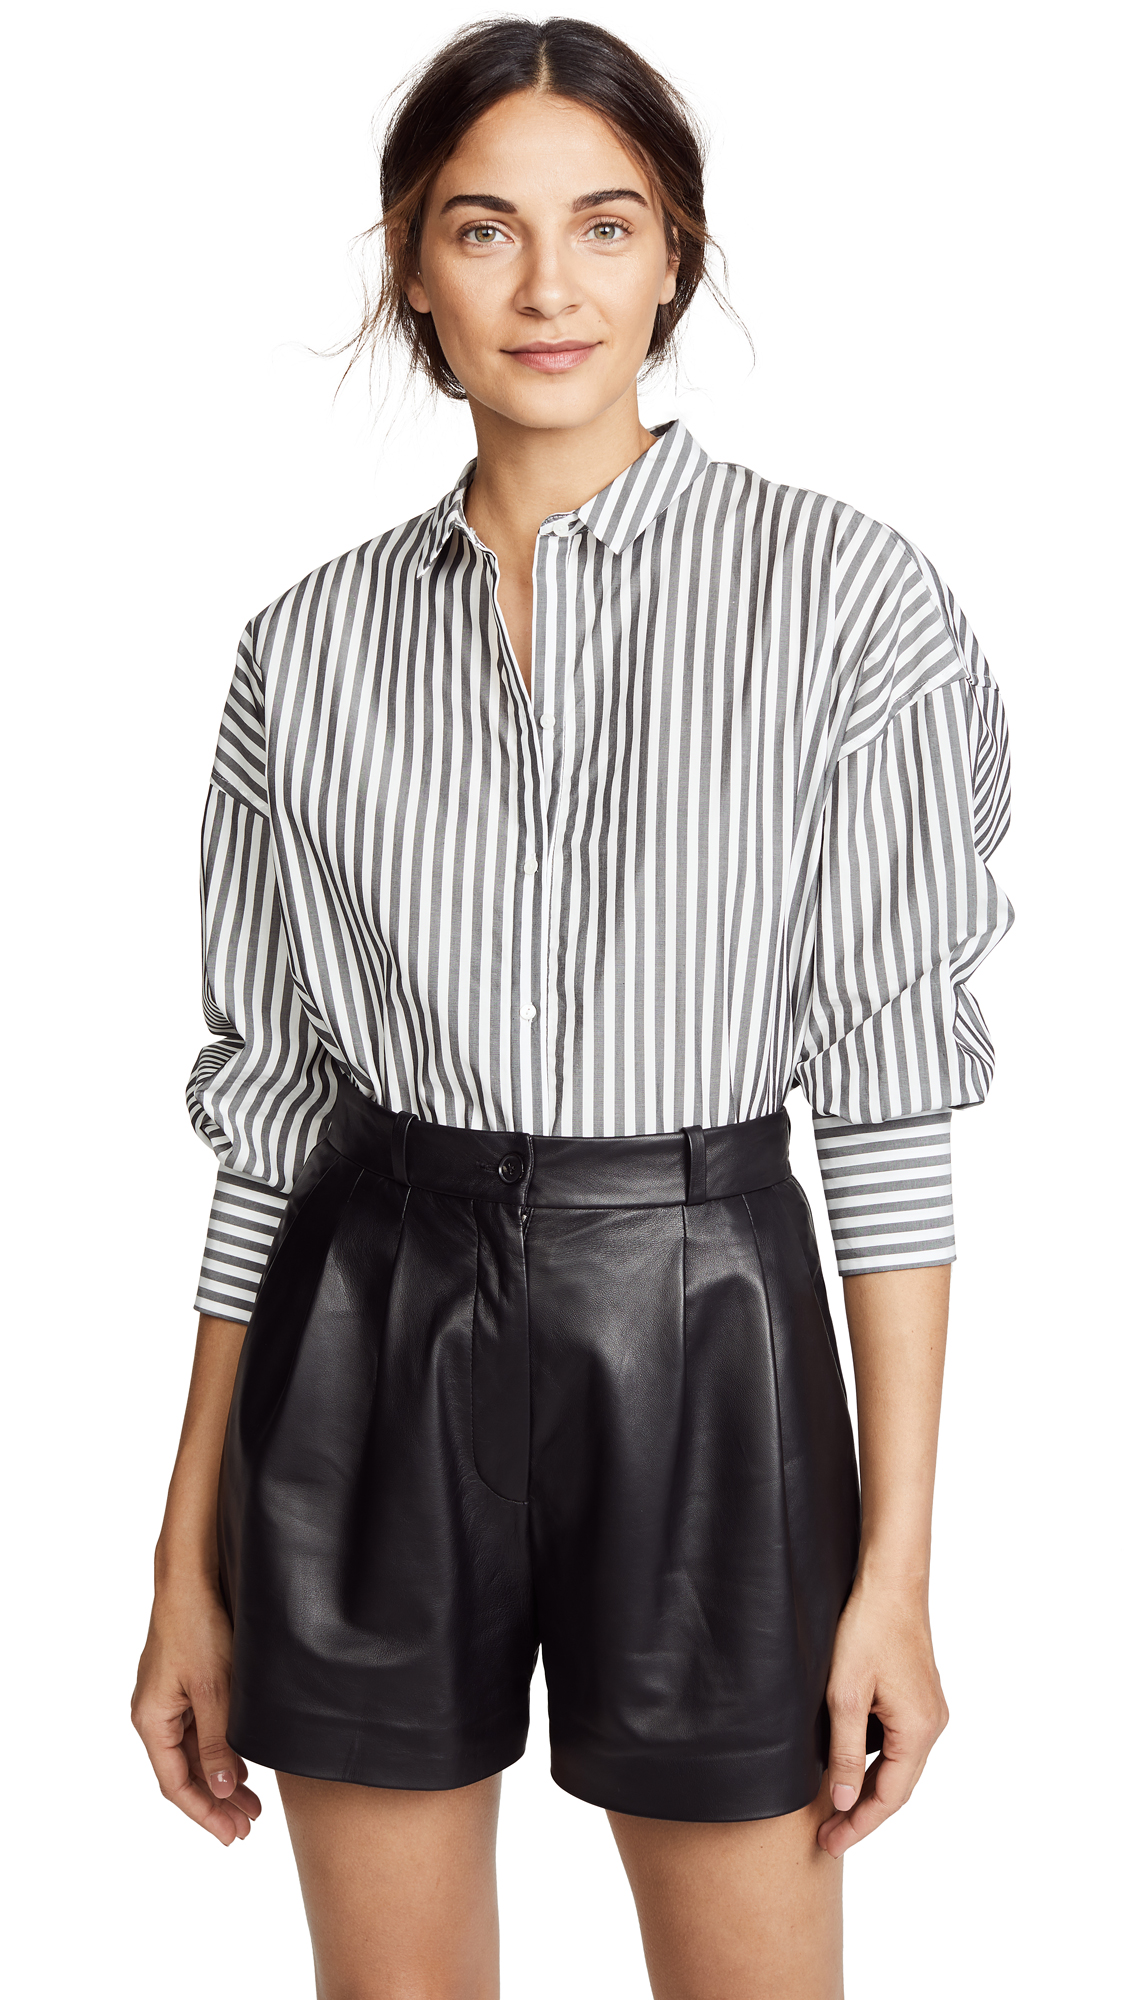 Nili Lotan Fulton Shirt In Black/White Stripe